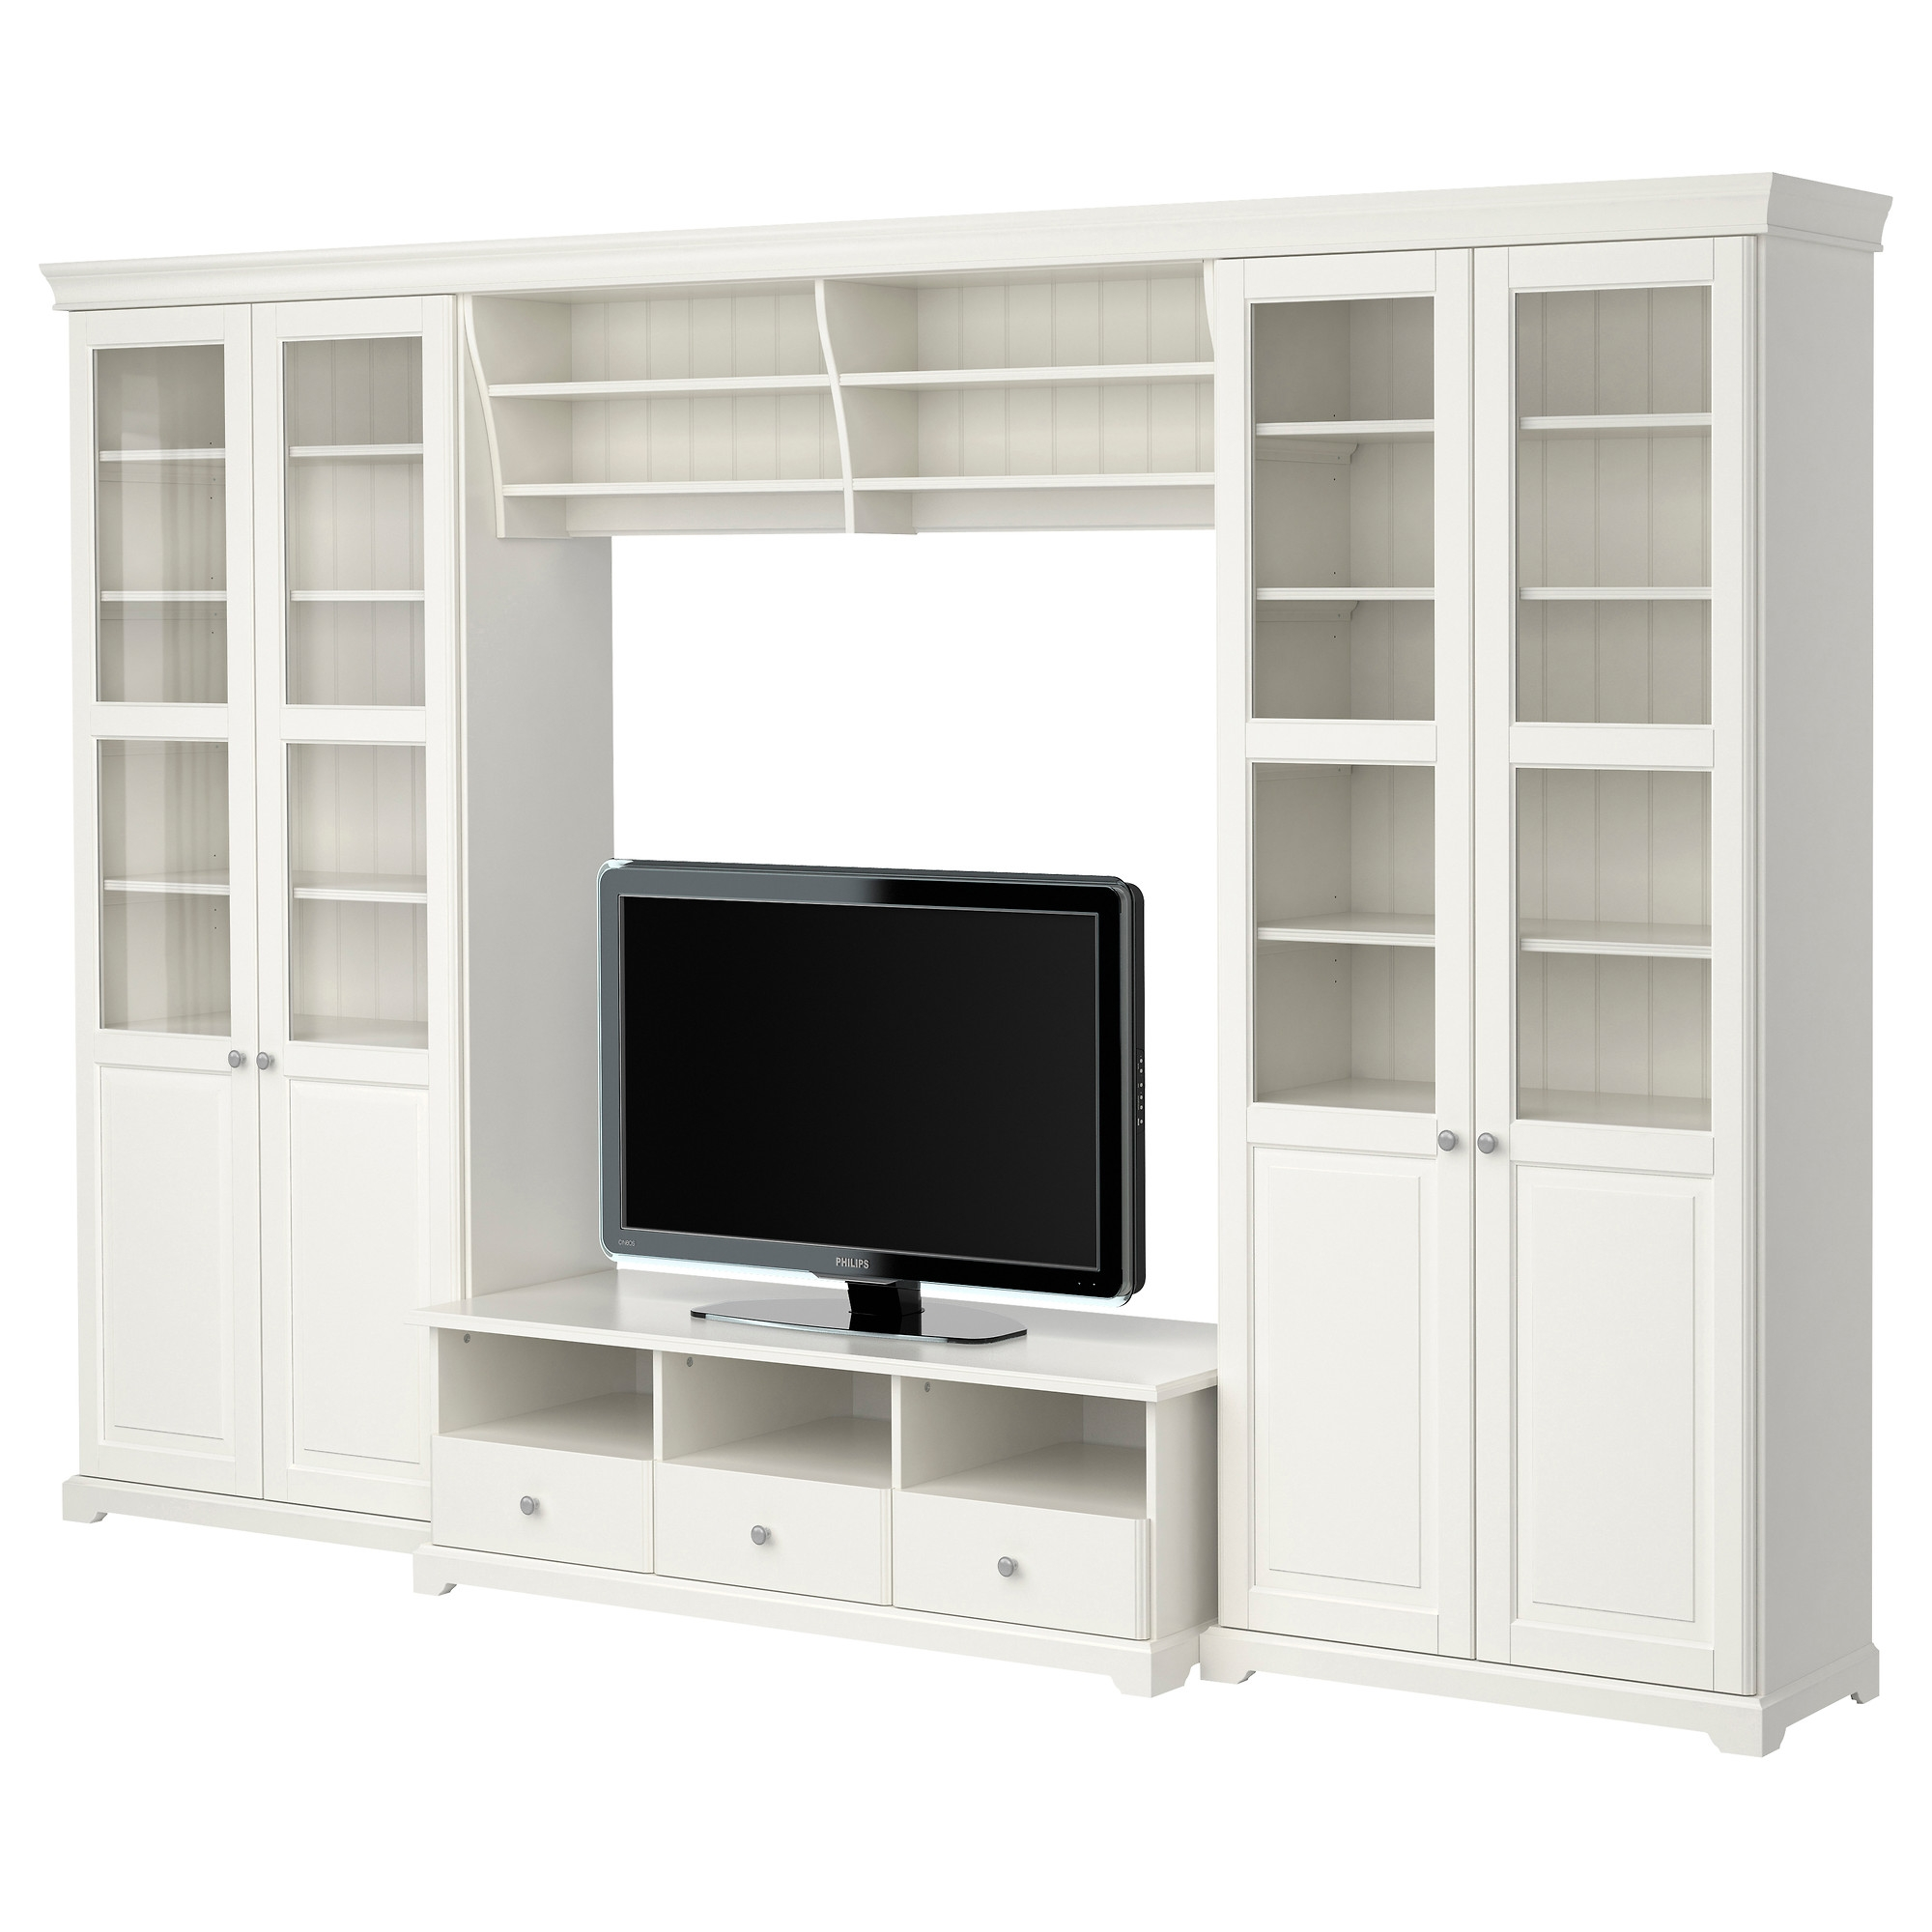 Tv Stands Entertainment Centers Ikea Regarding Tv Storage Units (View 1 of 15)